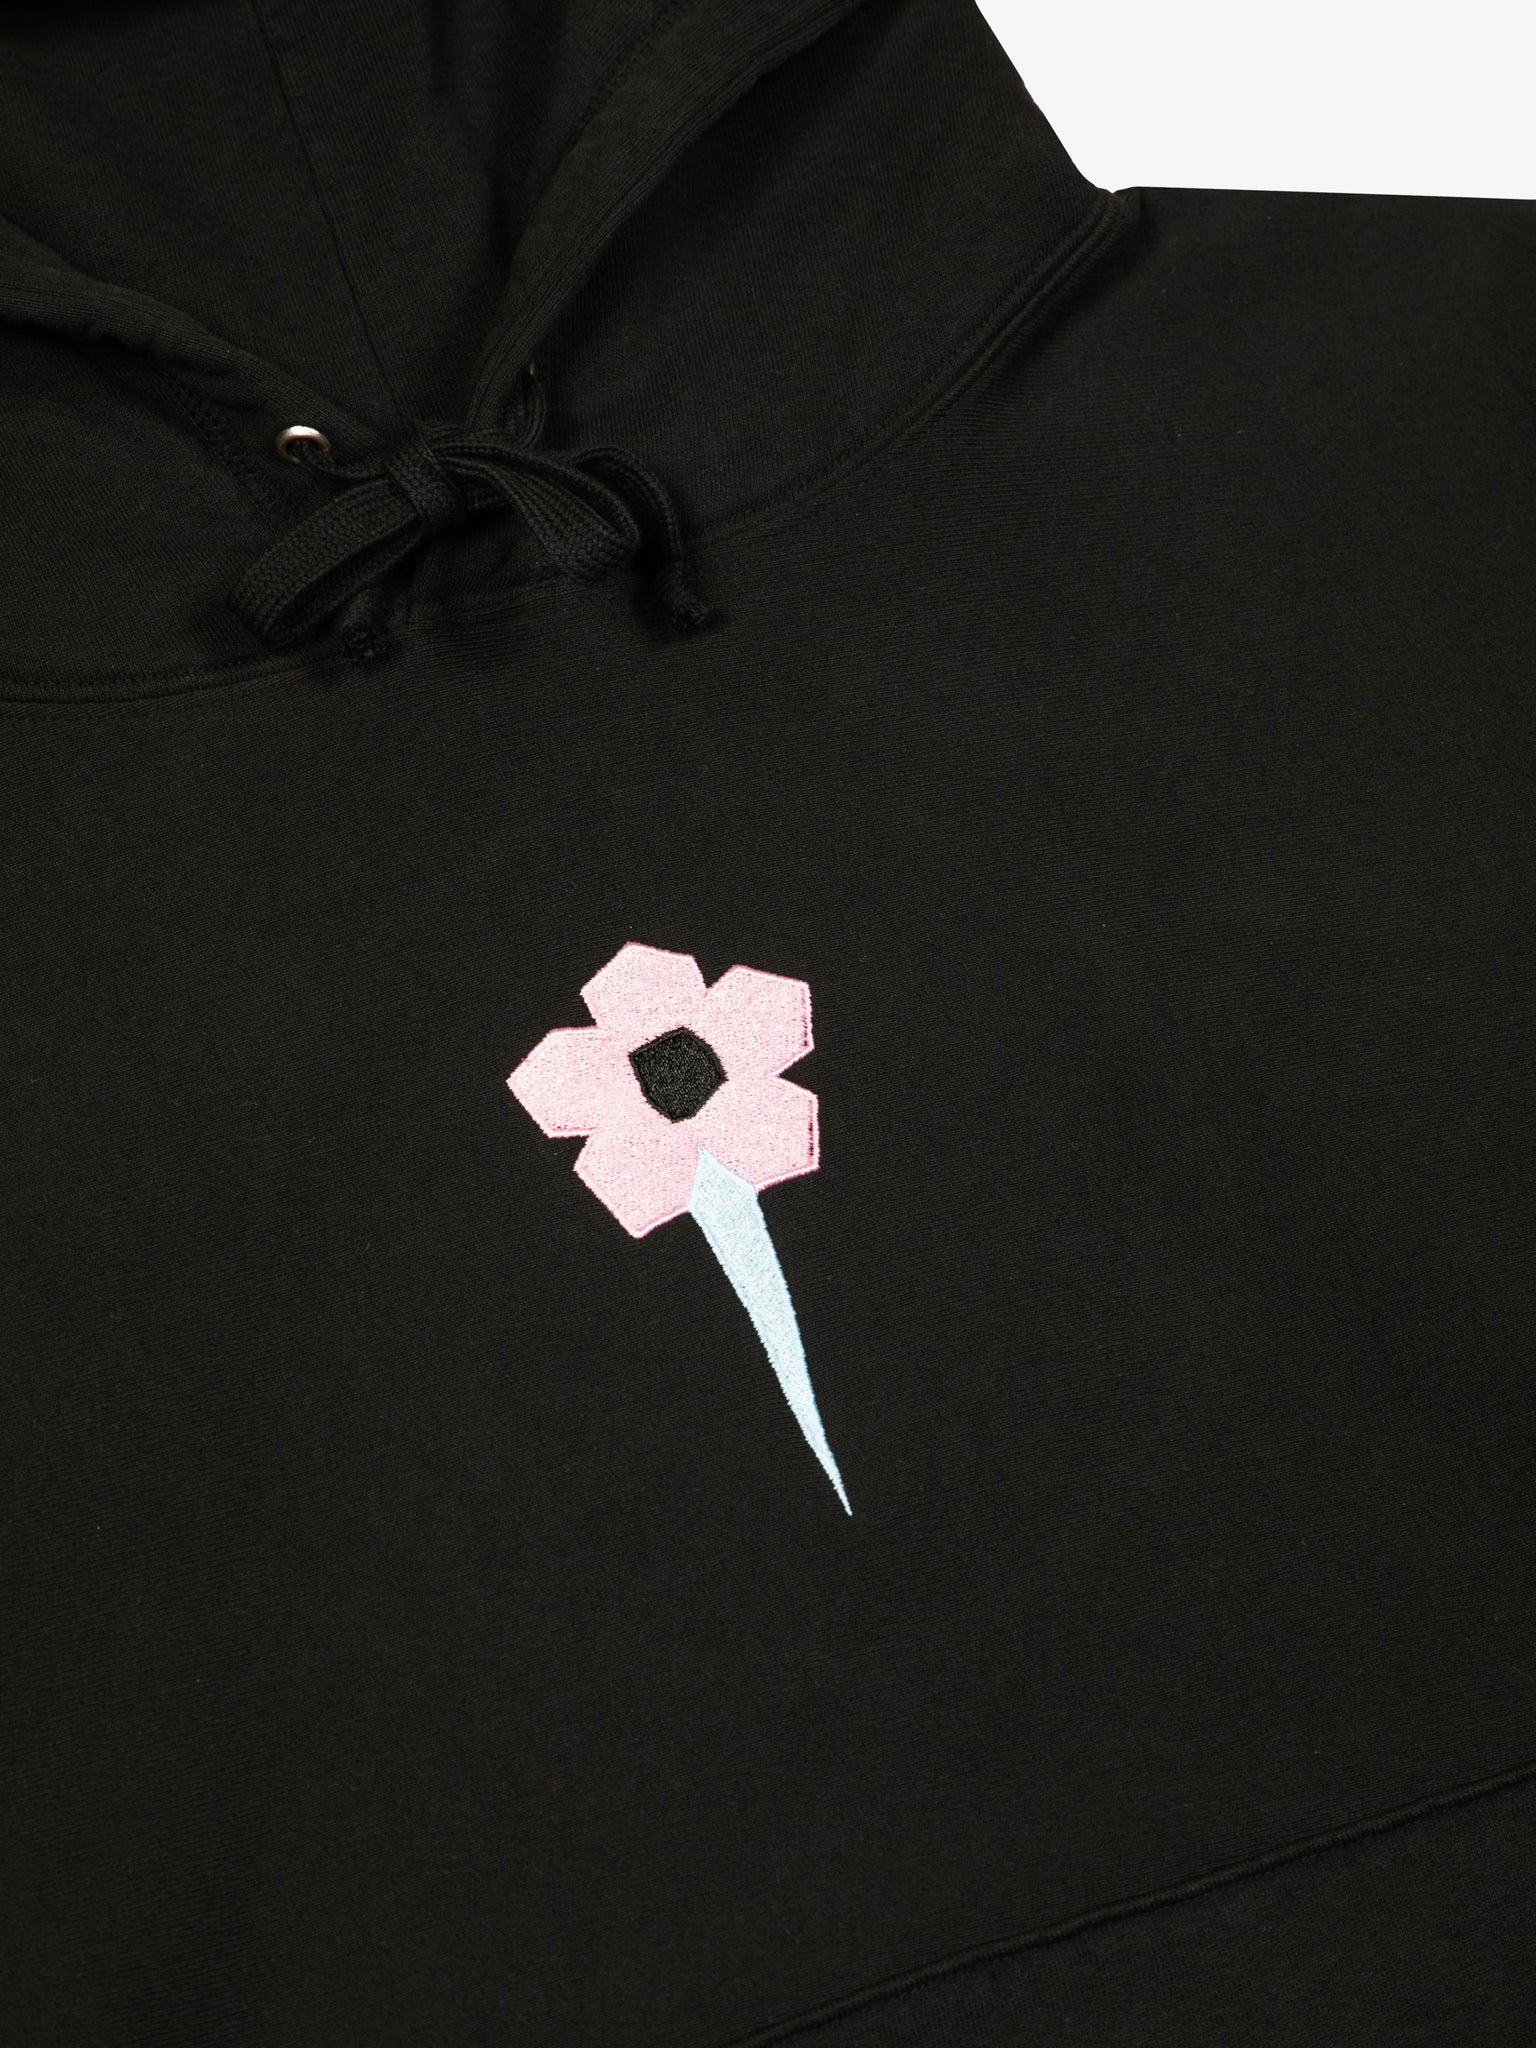 flower-logo-sweatshirt